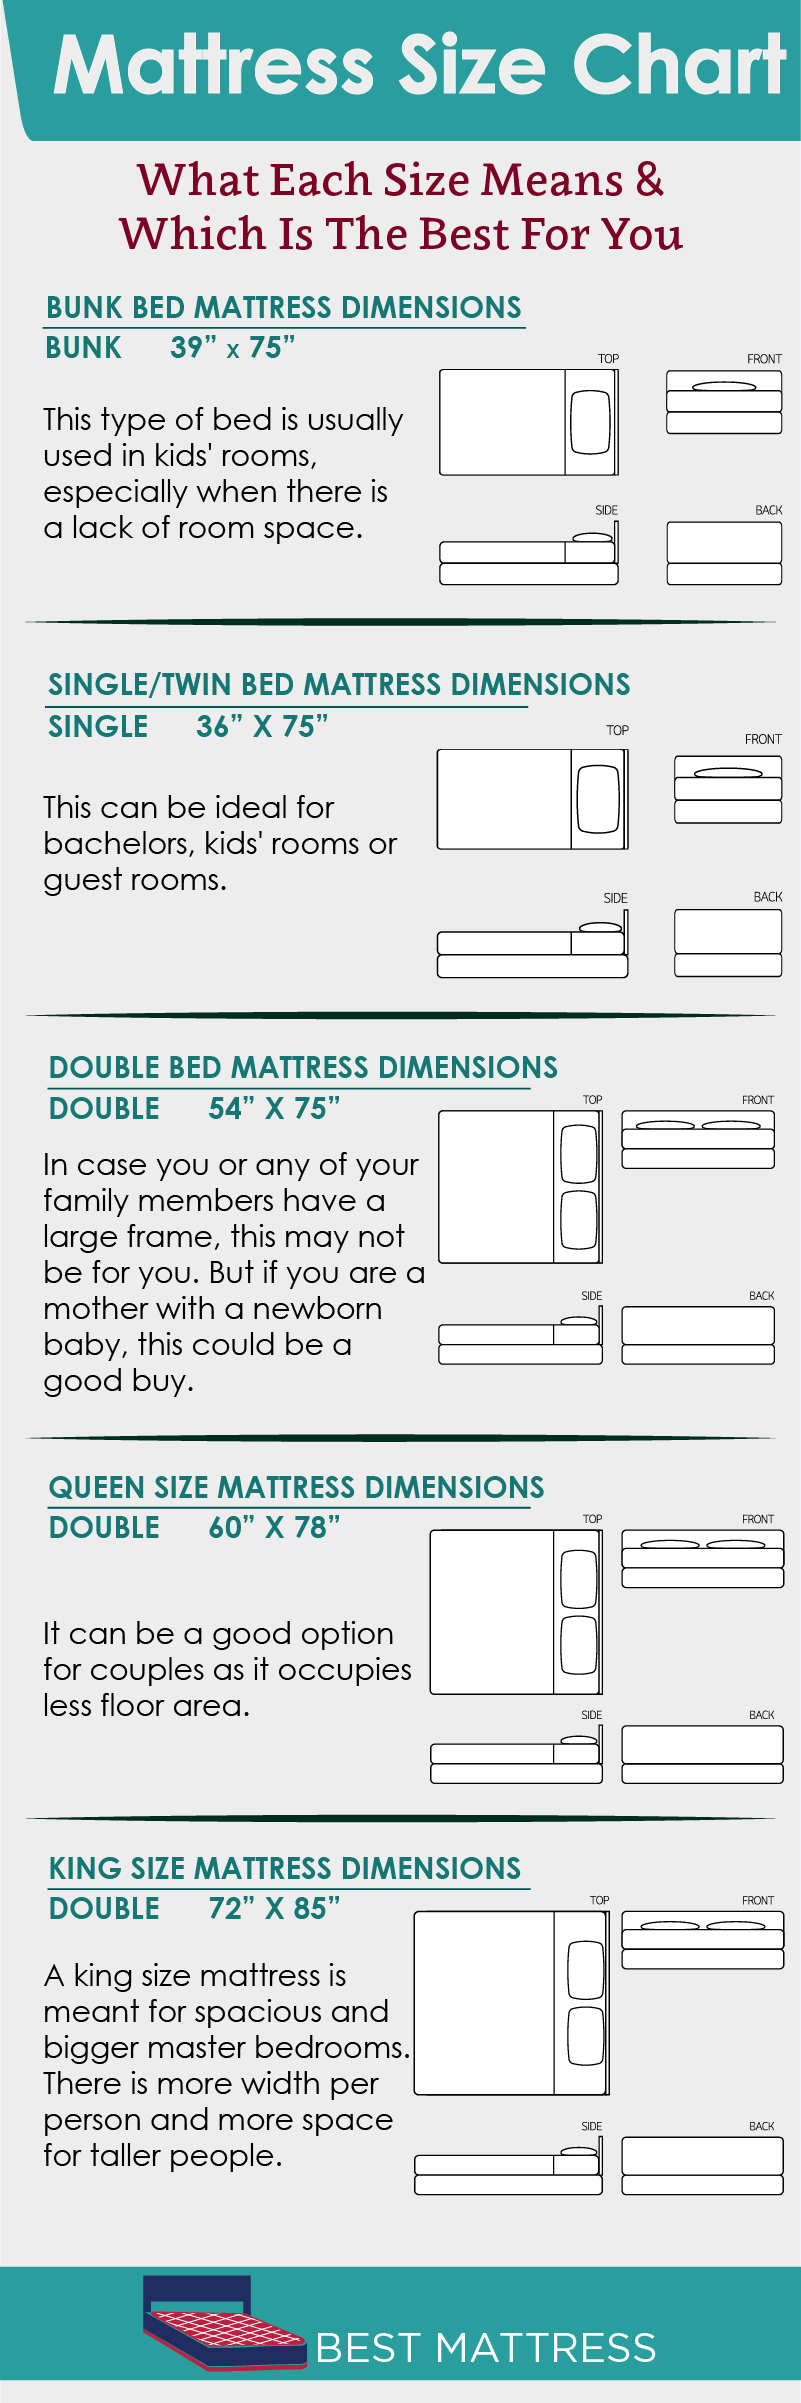 Single Mattress Length Mattress Size Chart Single Double King Or Queen What Do They